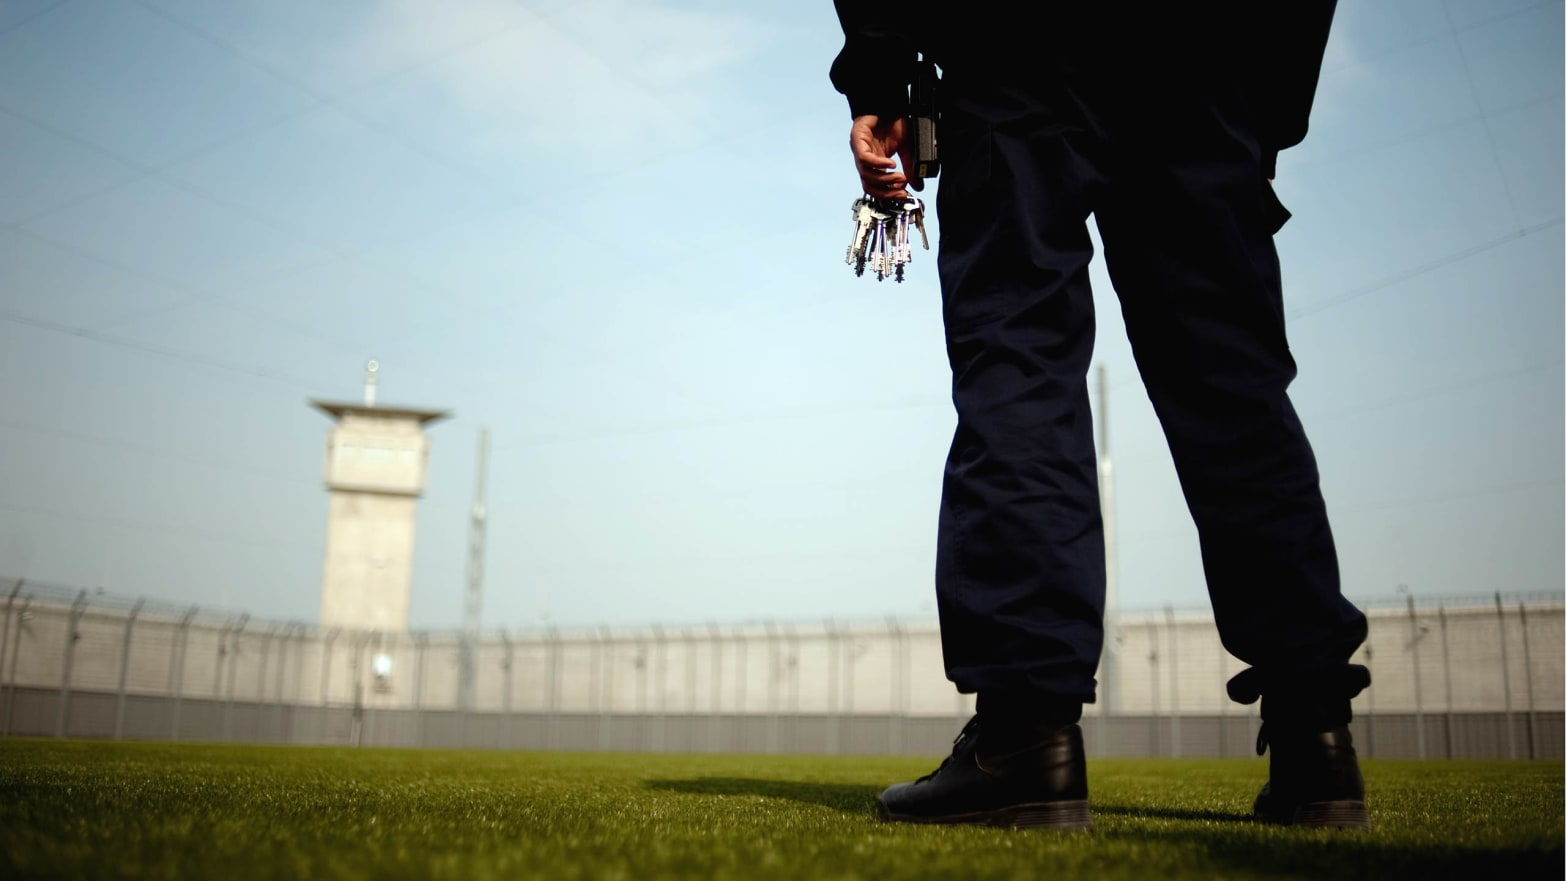 Prison Officials 'Punished' Sergeant Who Reported Sexual